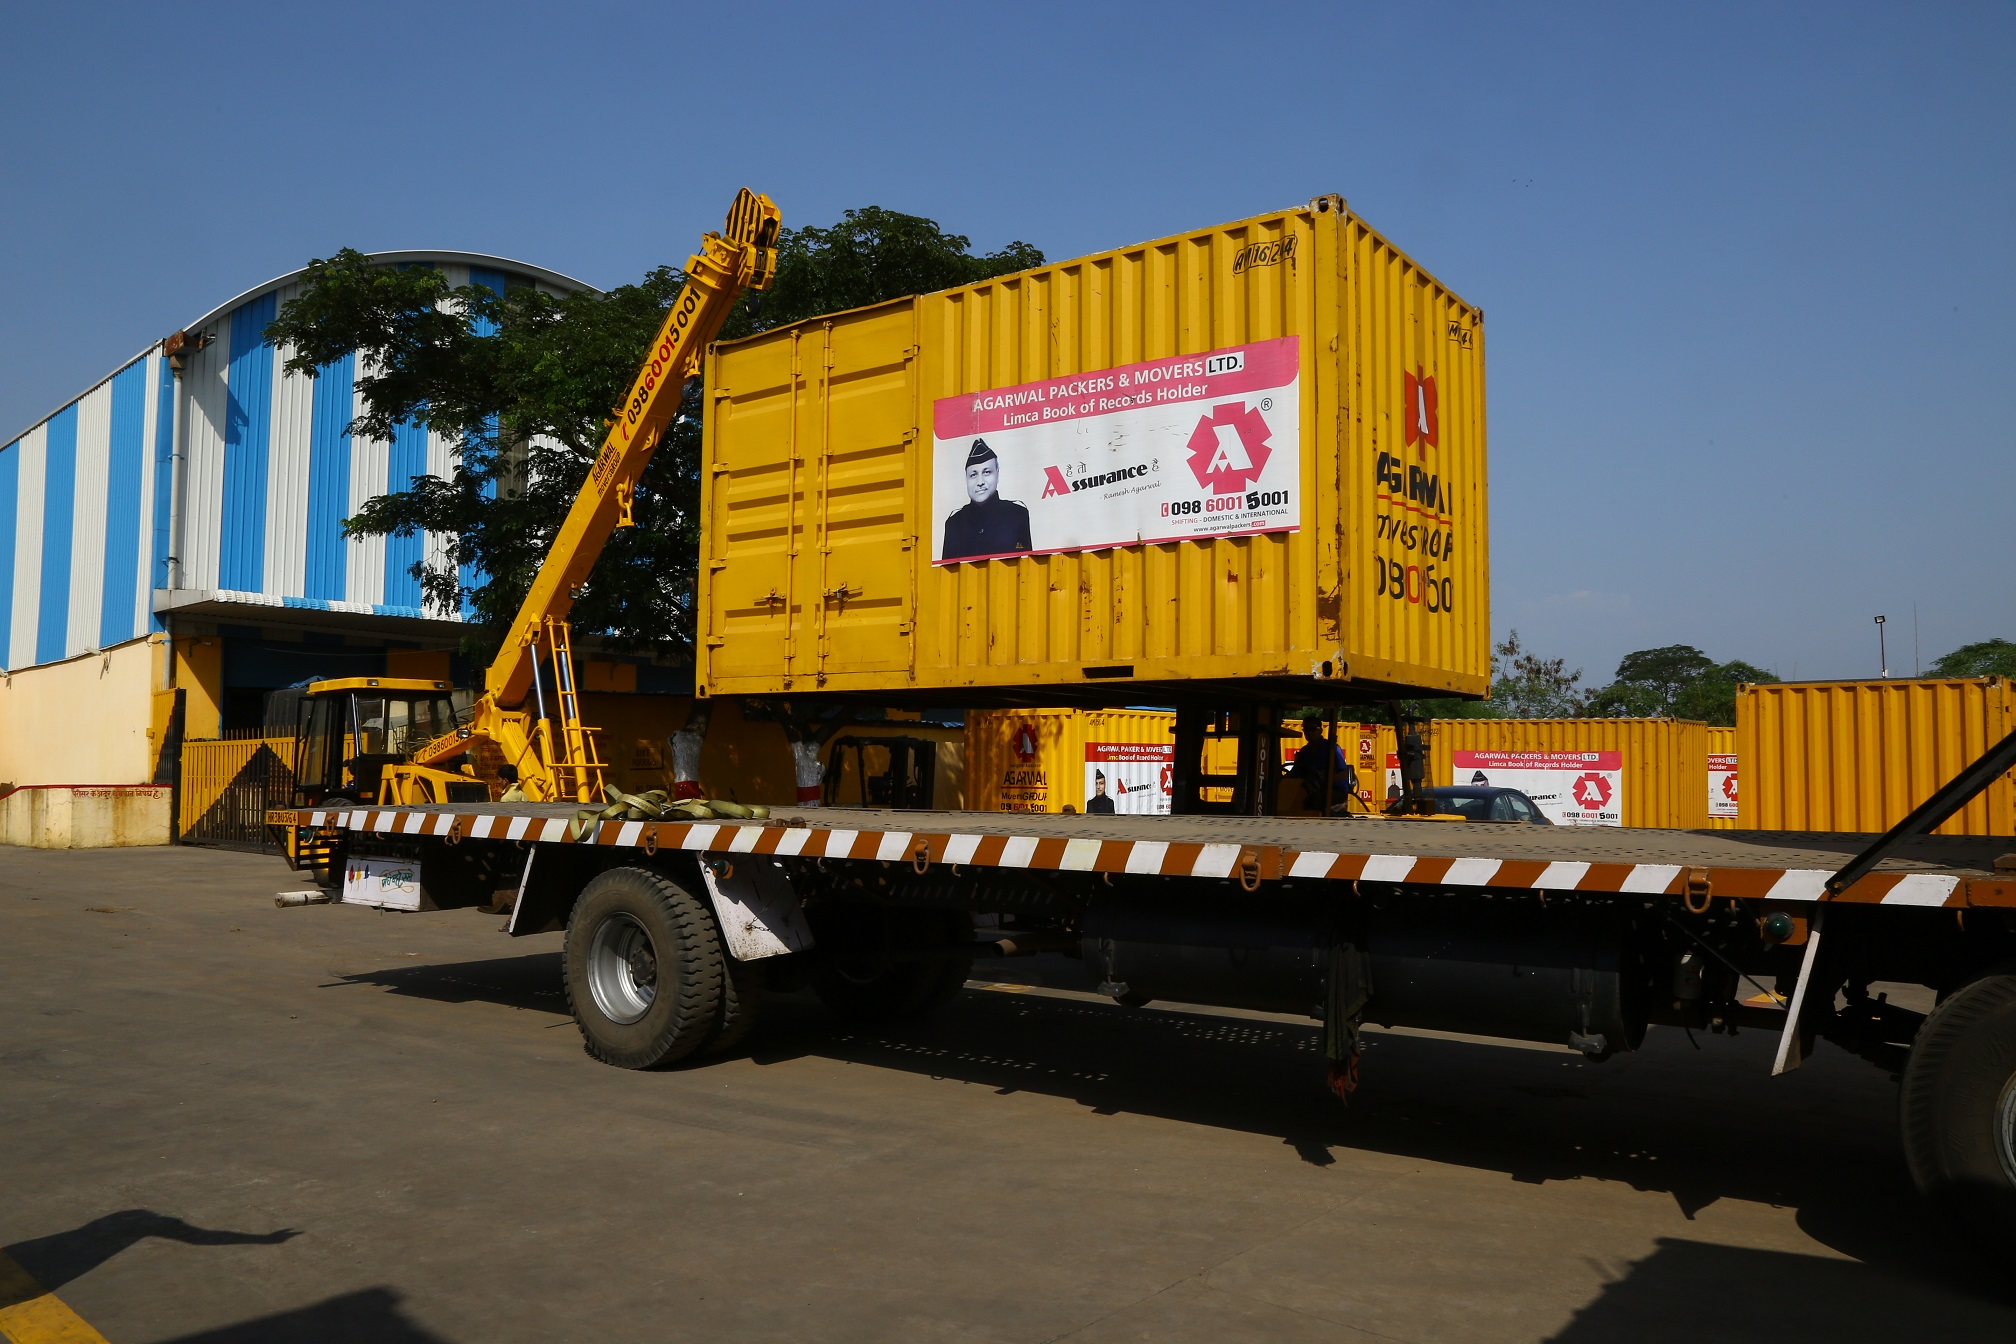 Excellent Packers and Movers Support by Agarwal packers and movers